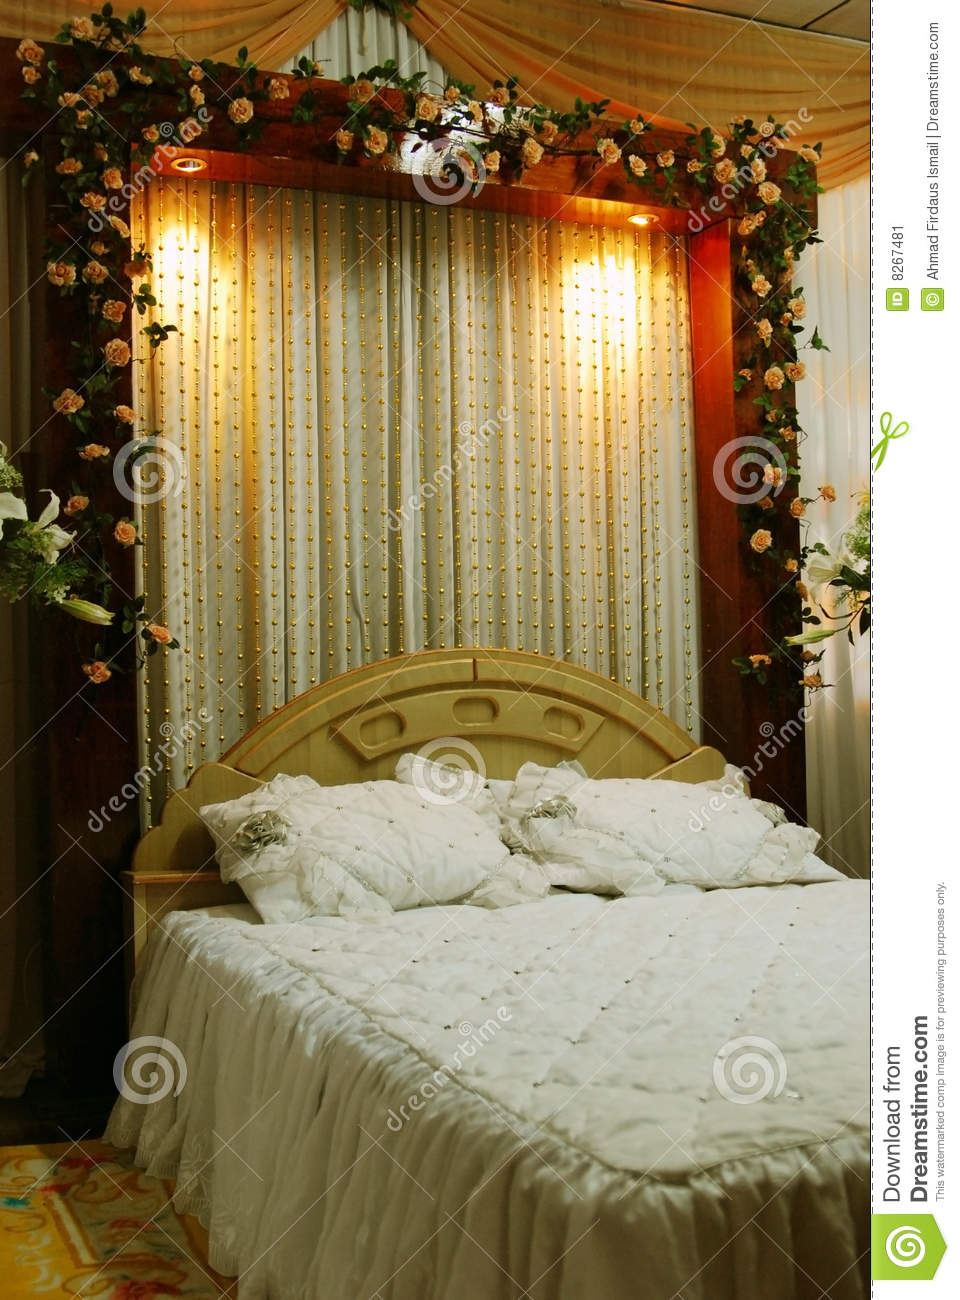 Wedding bed decoration stock image image of banquet environment wedding bed decoration junglespirit Choice Image